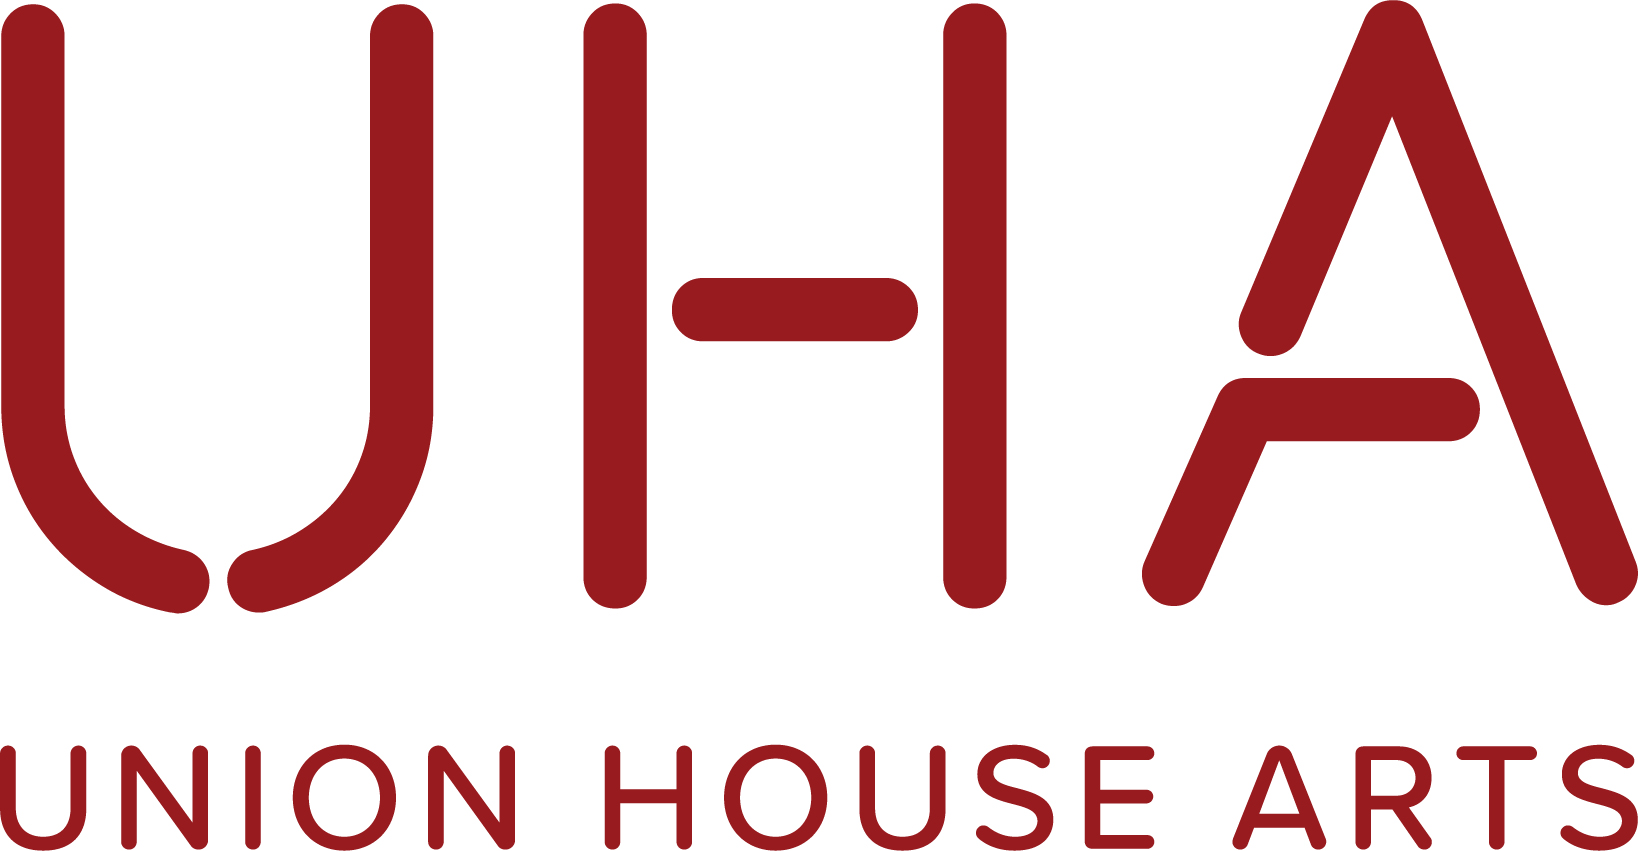 Union House Arts